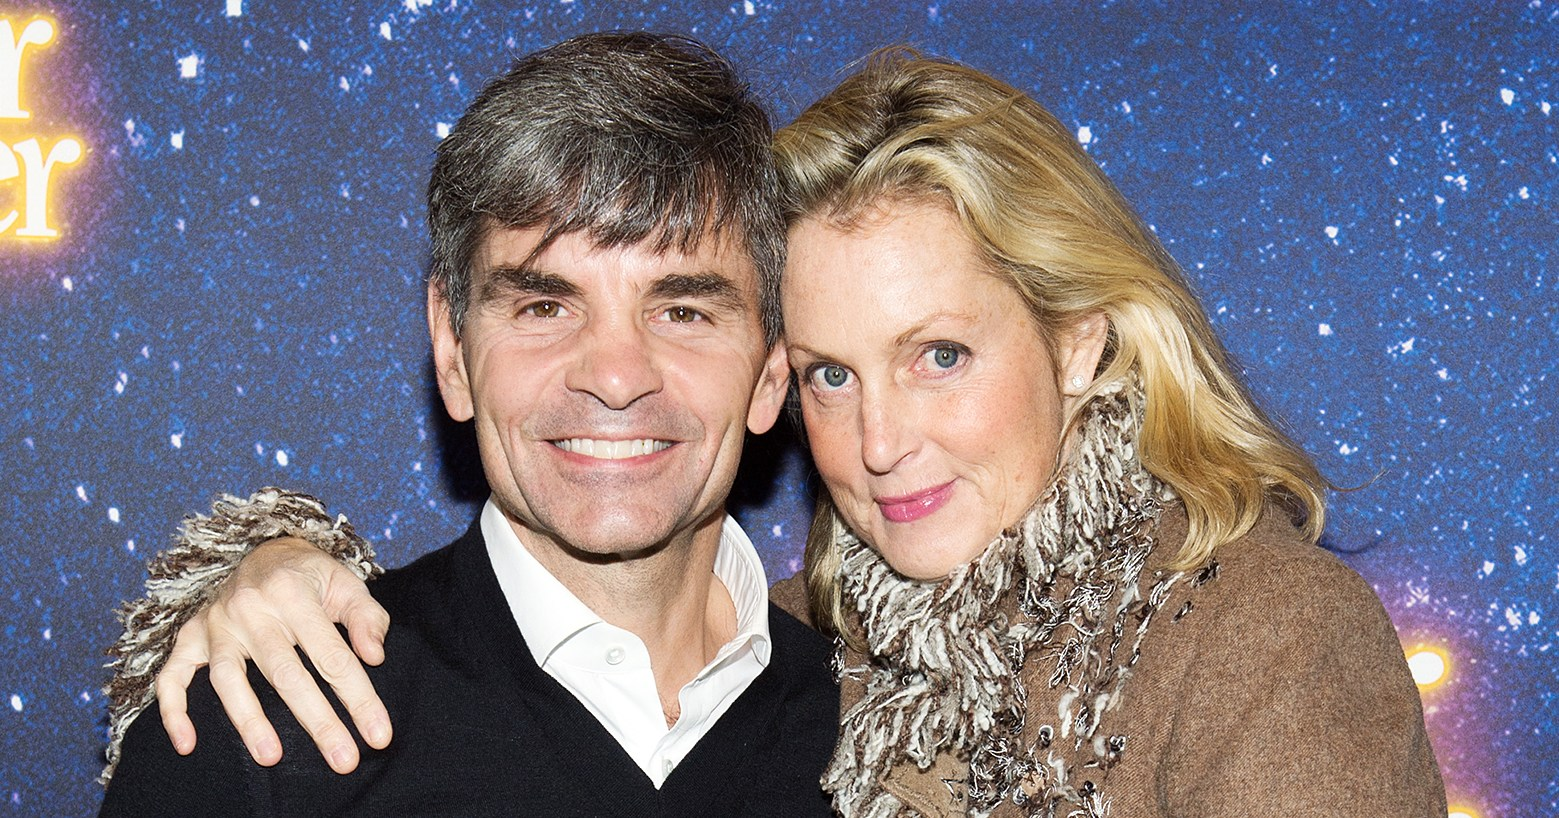 George Stephanopoulos Is Having a Ton of Sex With Ali Wentworth